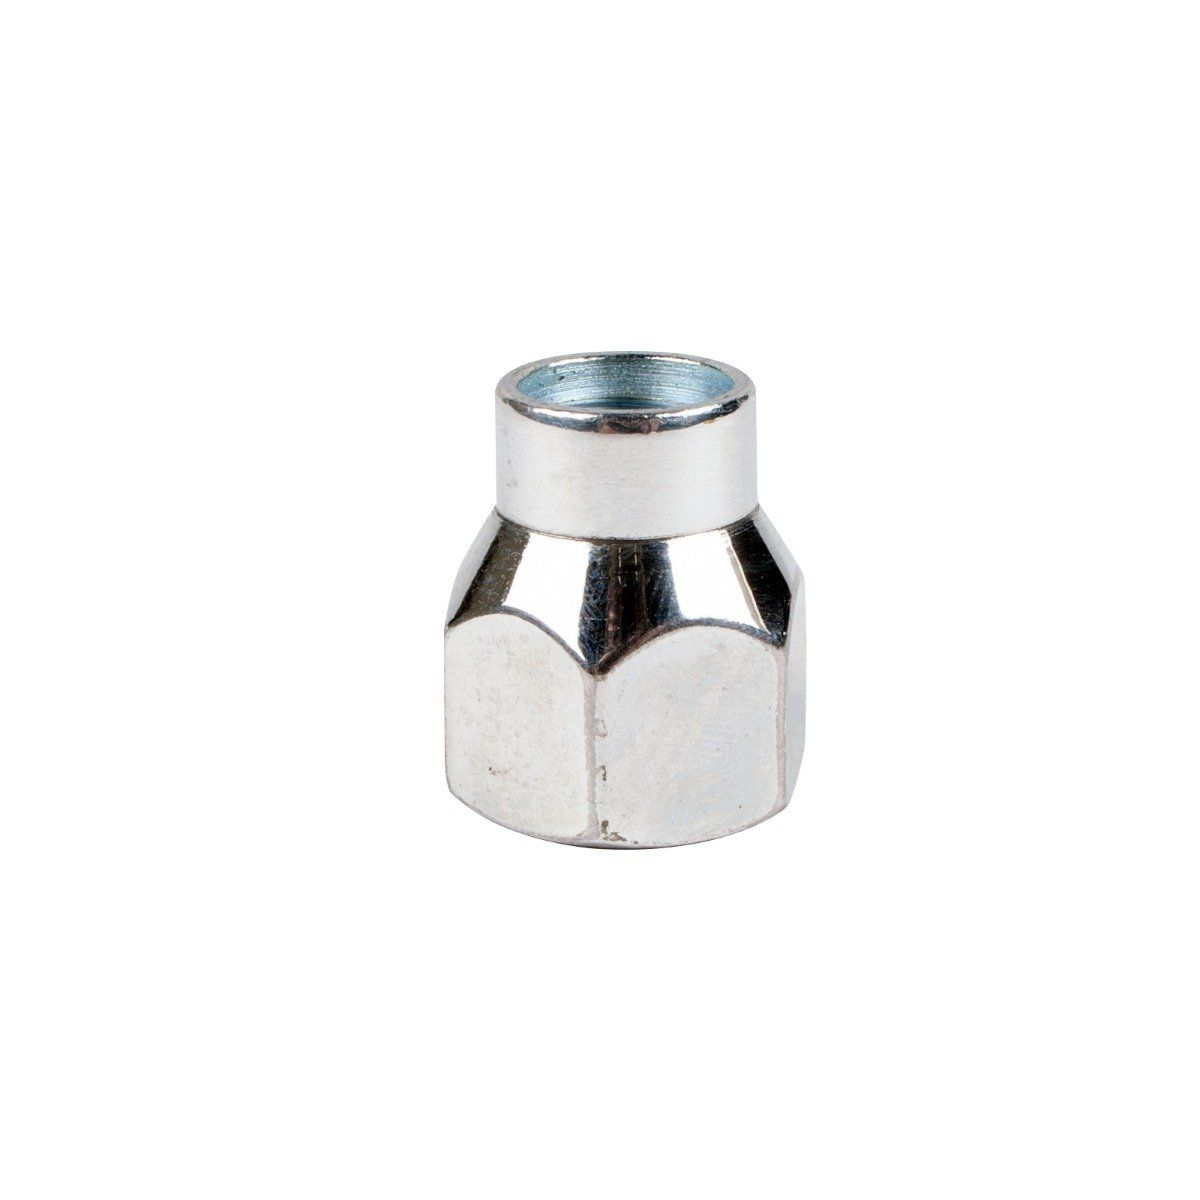 All-Pro Off-Road Extended Thread Lug Nuts - M12x1.5MM